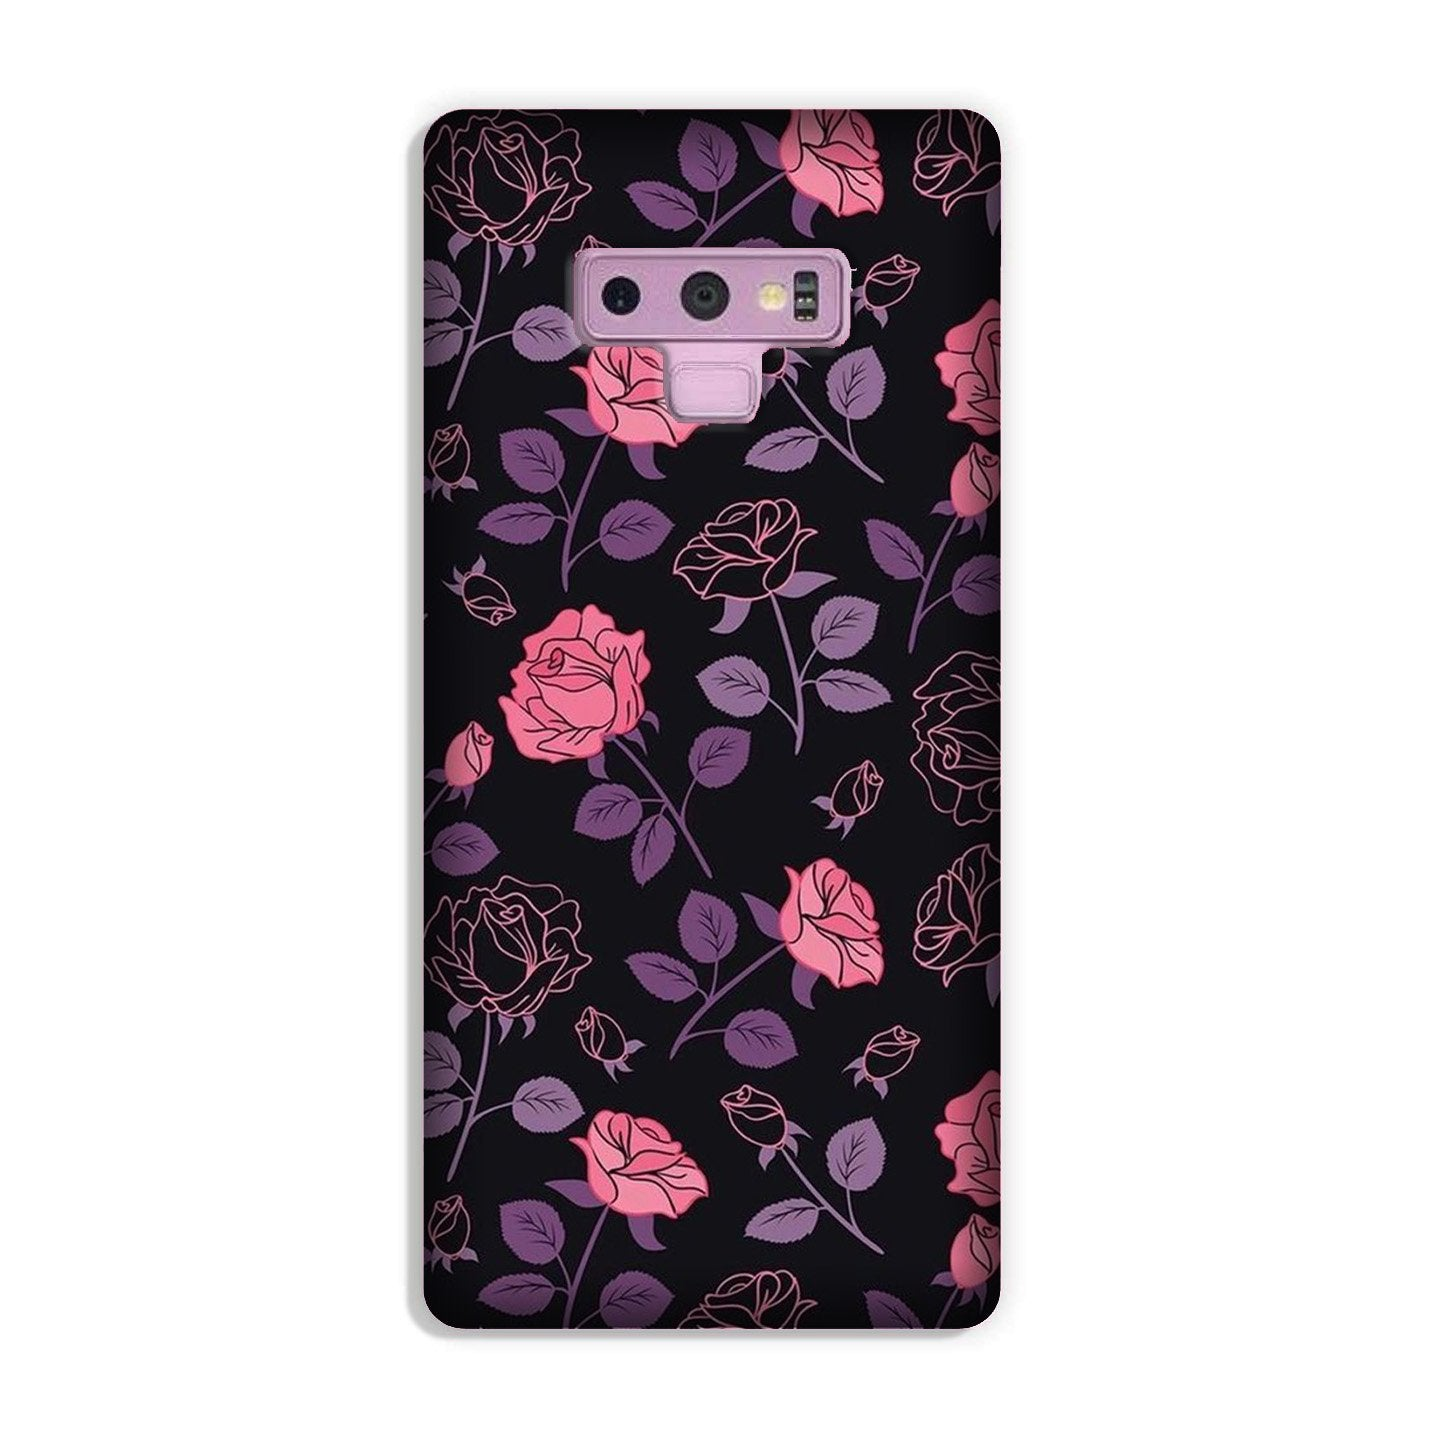 Rose Black Background Case for Galaxy Note 9